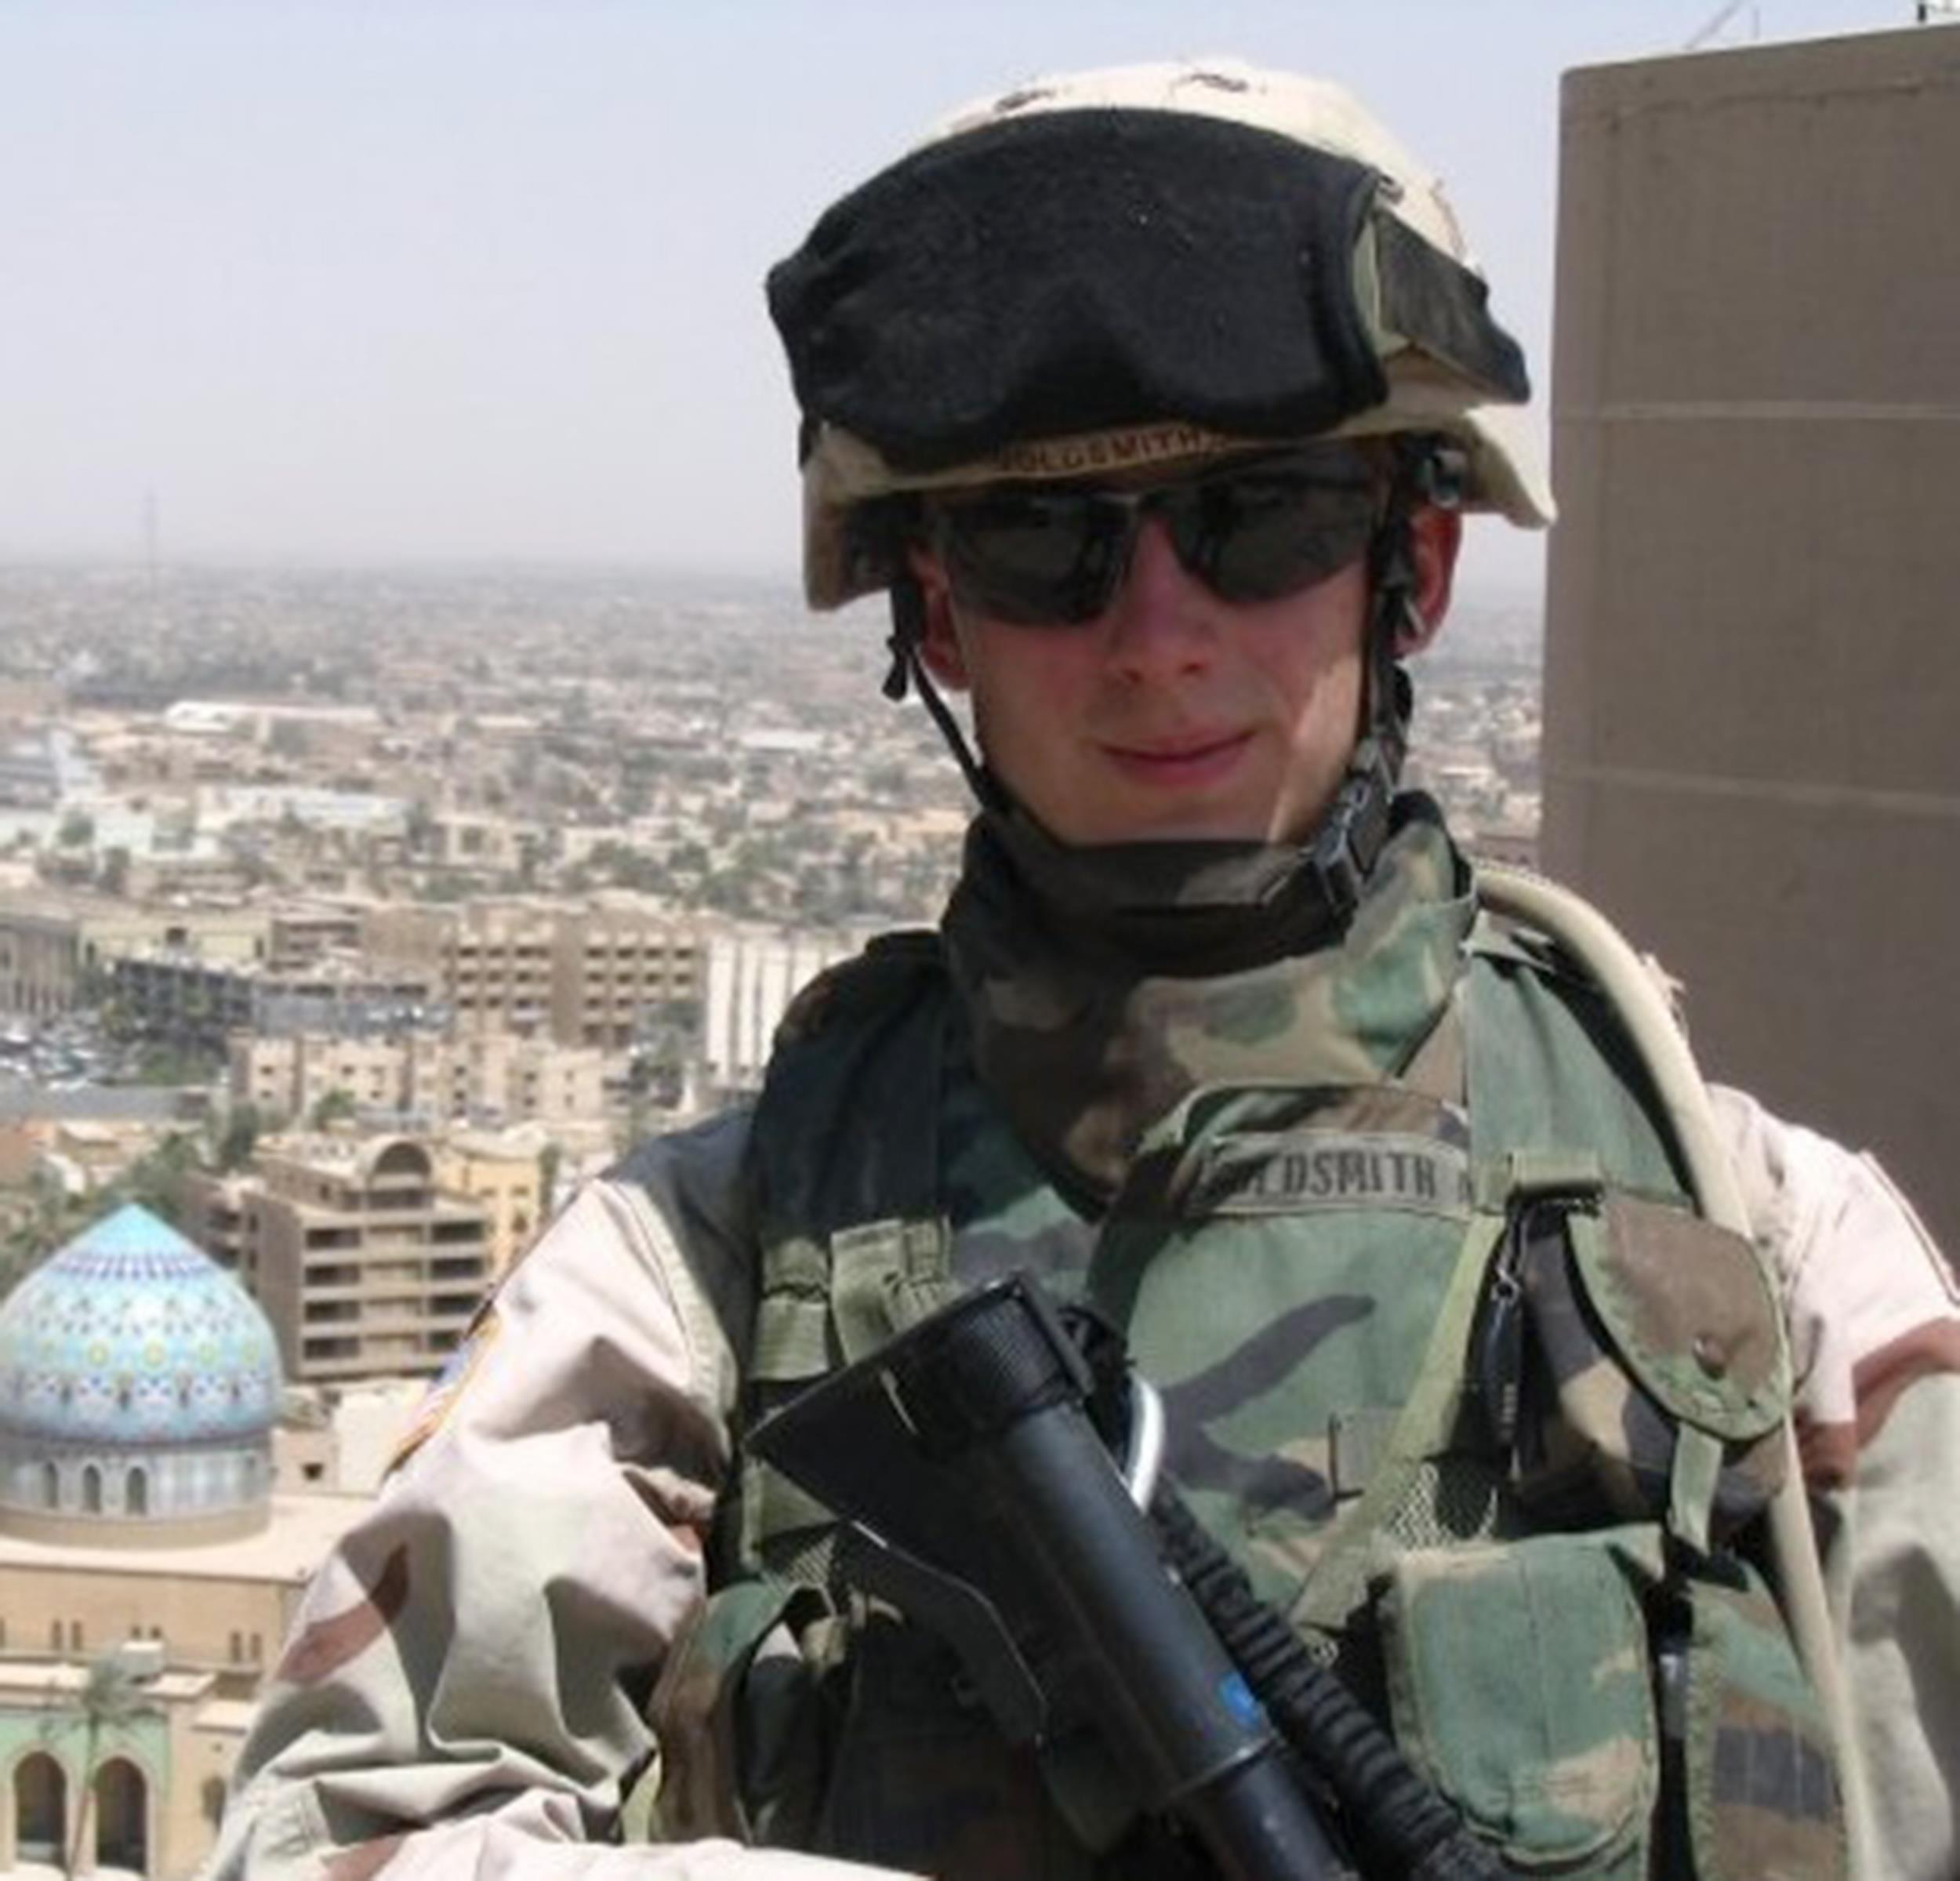 Image: Kris Goldsmith on duty in Baghdad